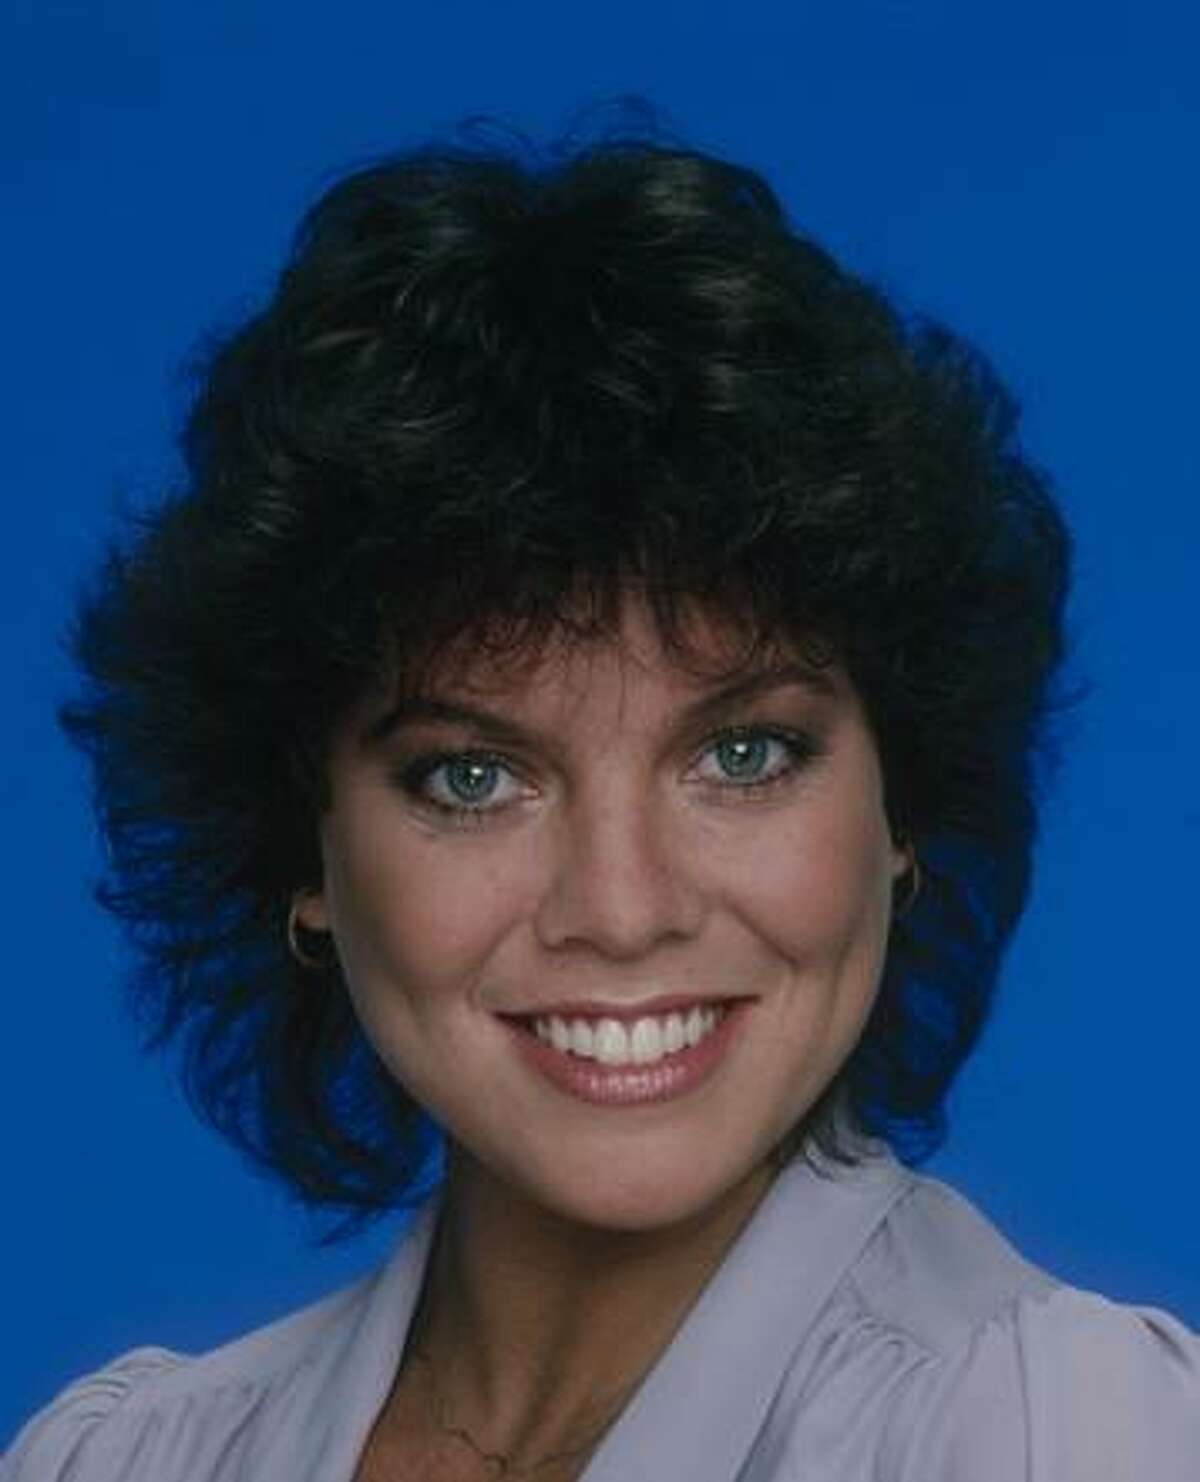 Actress Erin Moran attends 17th Annual Academy of Country